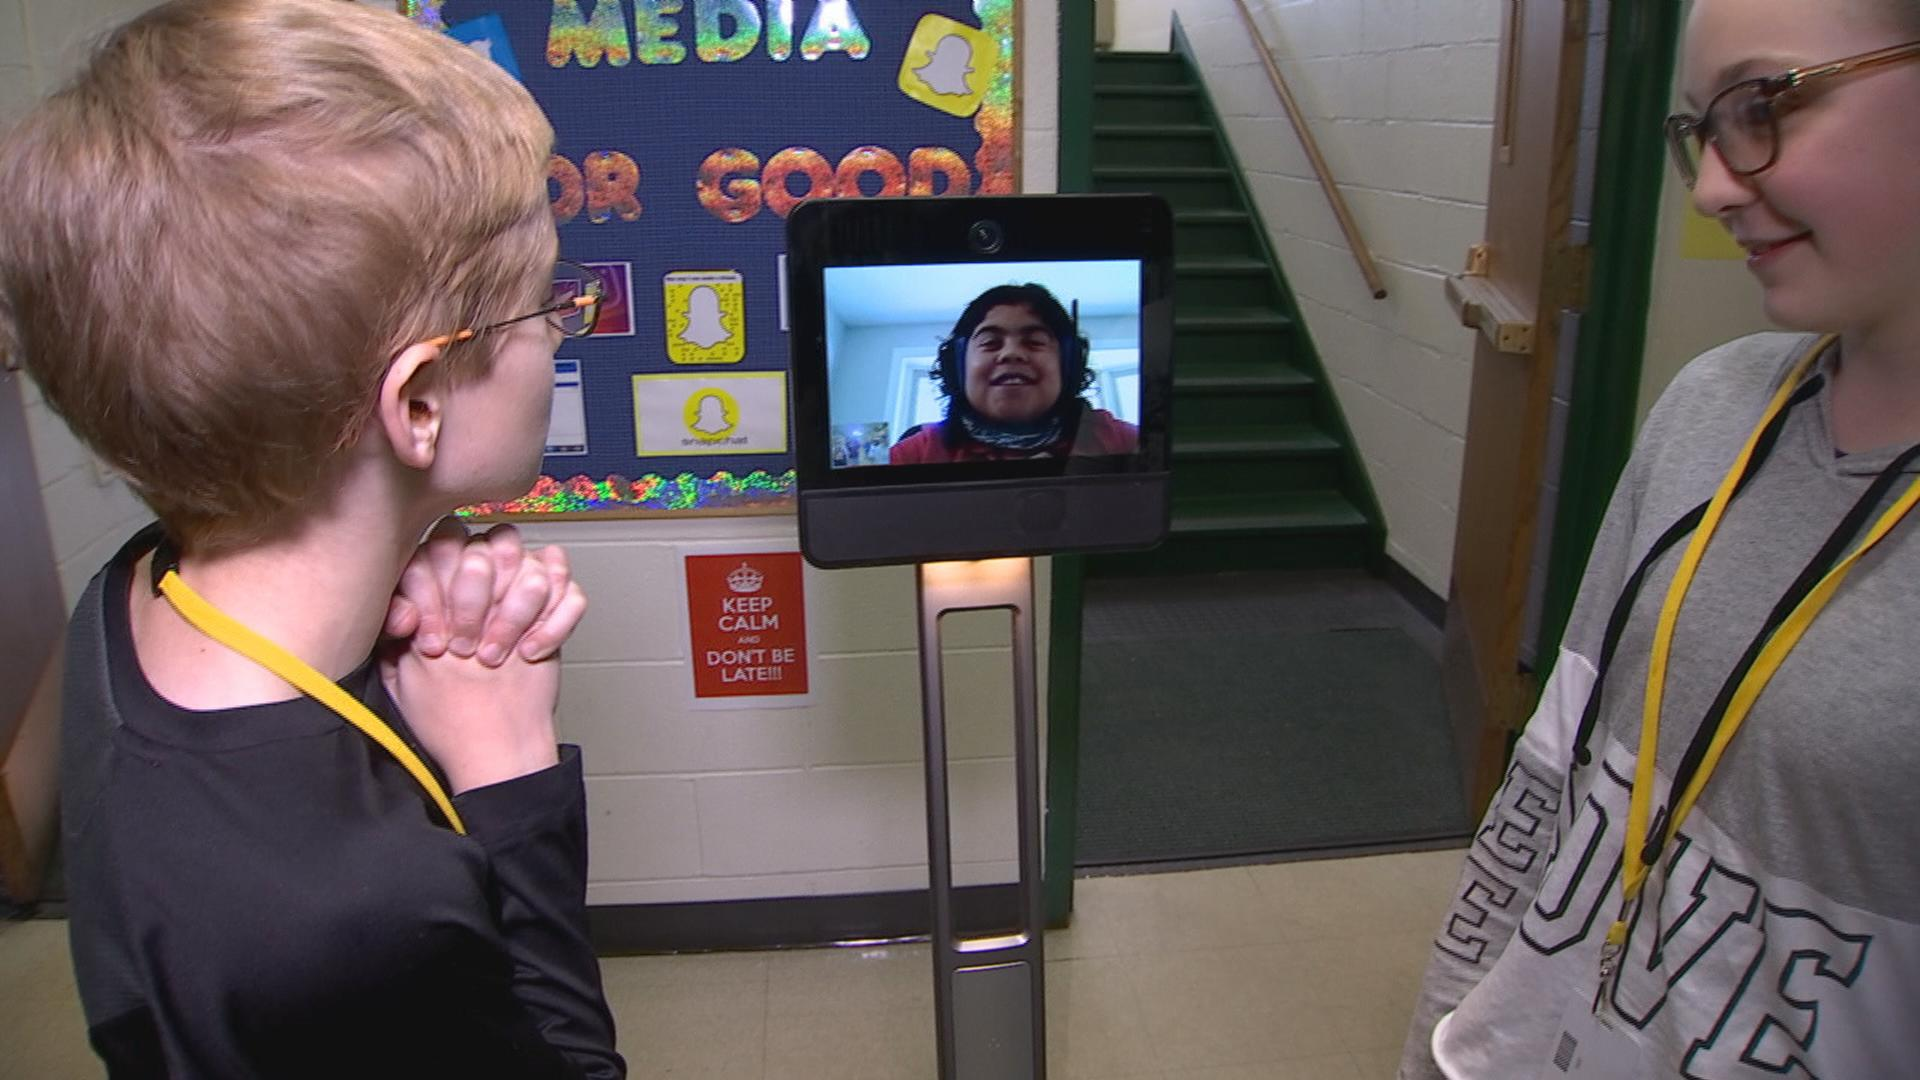 Boy With Health Issues Uses Robot to Attend School